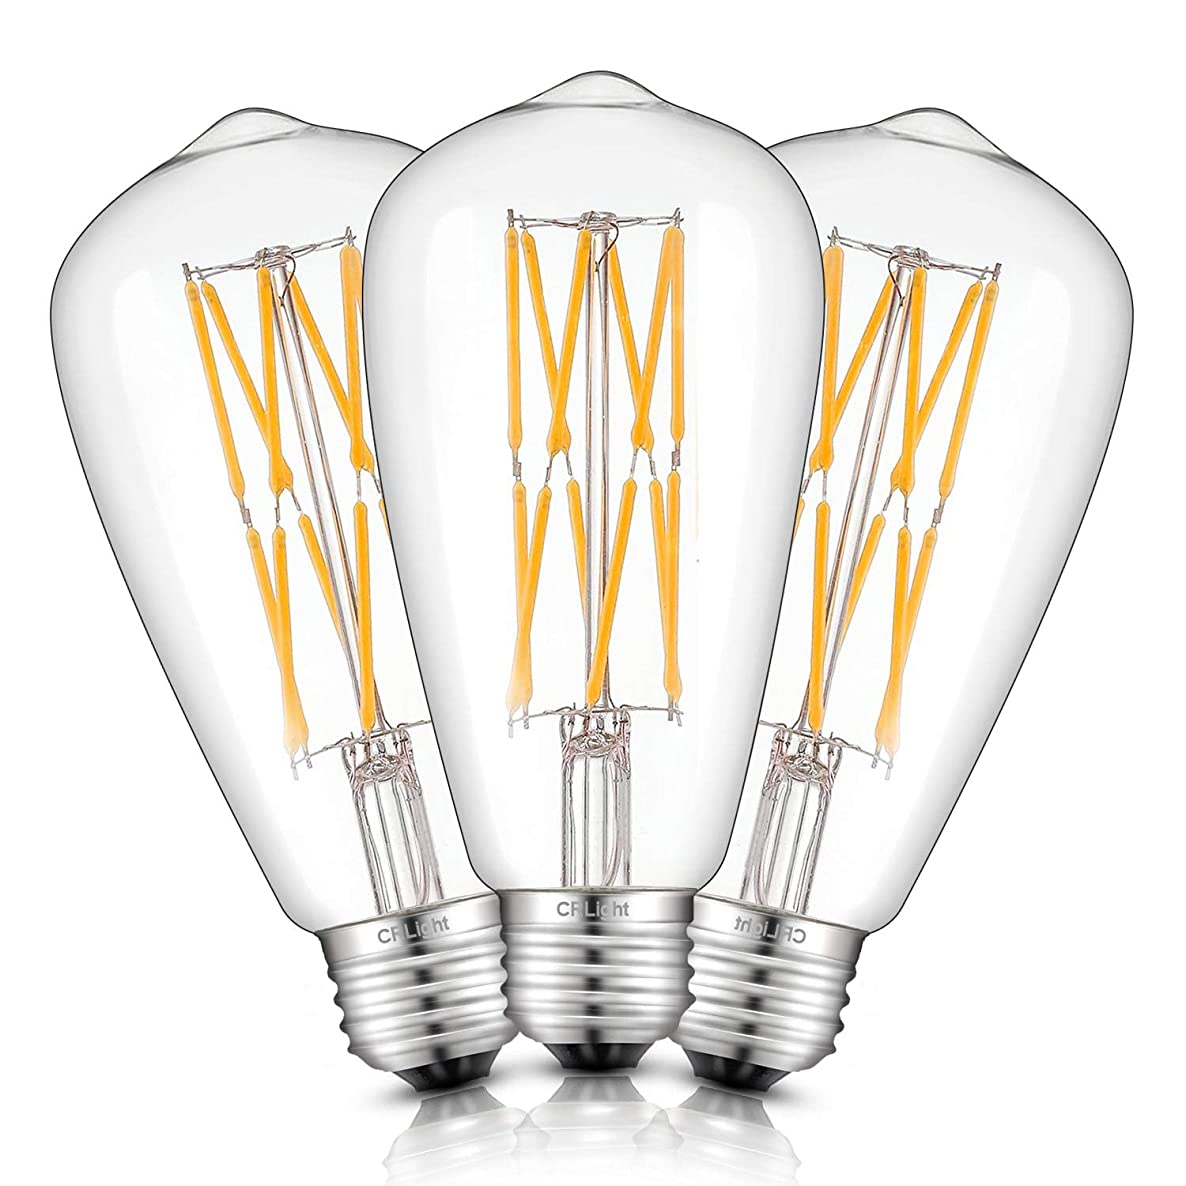 CRLight 12W Dimmable LED Edison Bulb 1200LM 120W Equivalent 2700K Warm White, E26 Medium Base Antique ST64 Clear Glass LED Double-layer Spiral Filament Bulbs, Smooth Dimming Version, 3 Pack